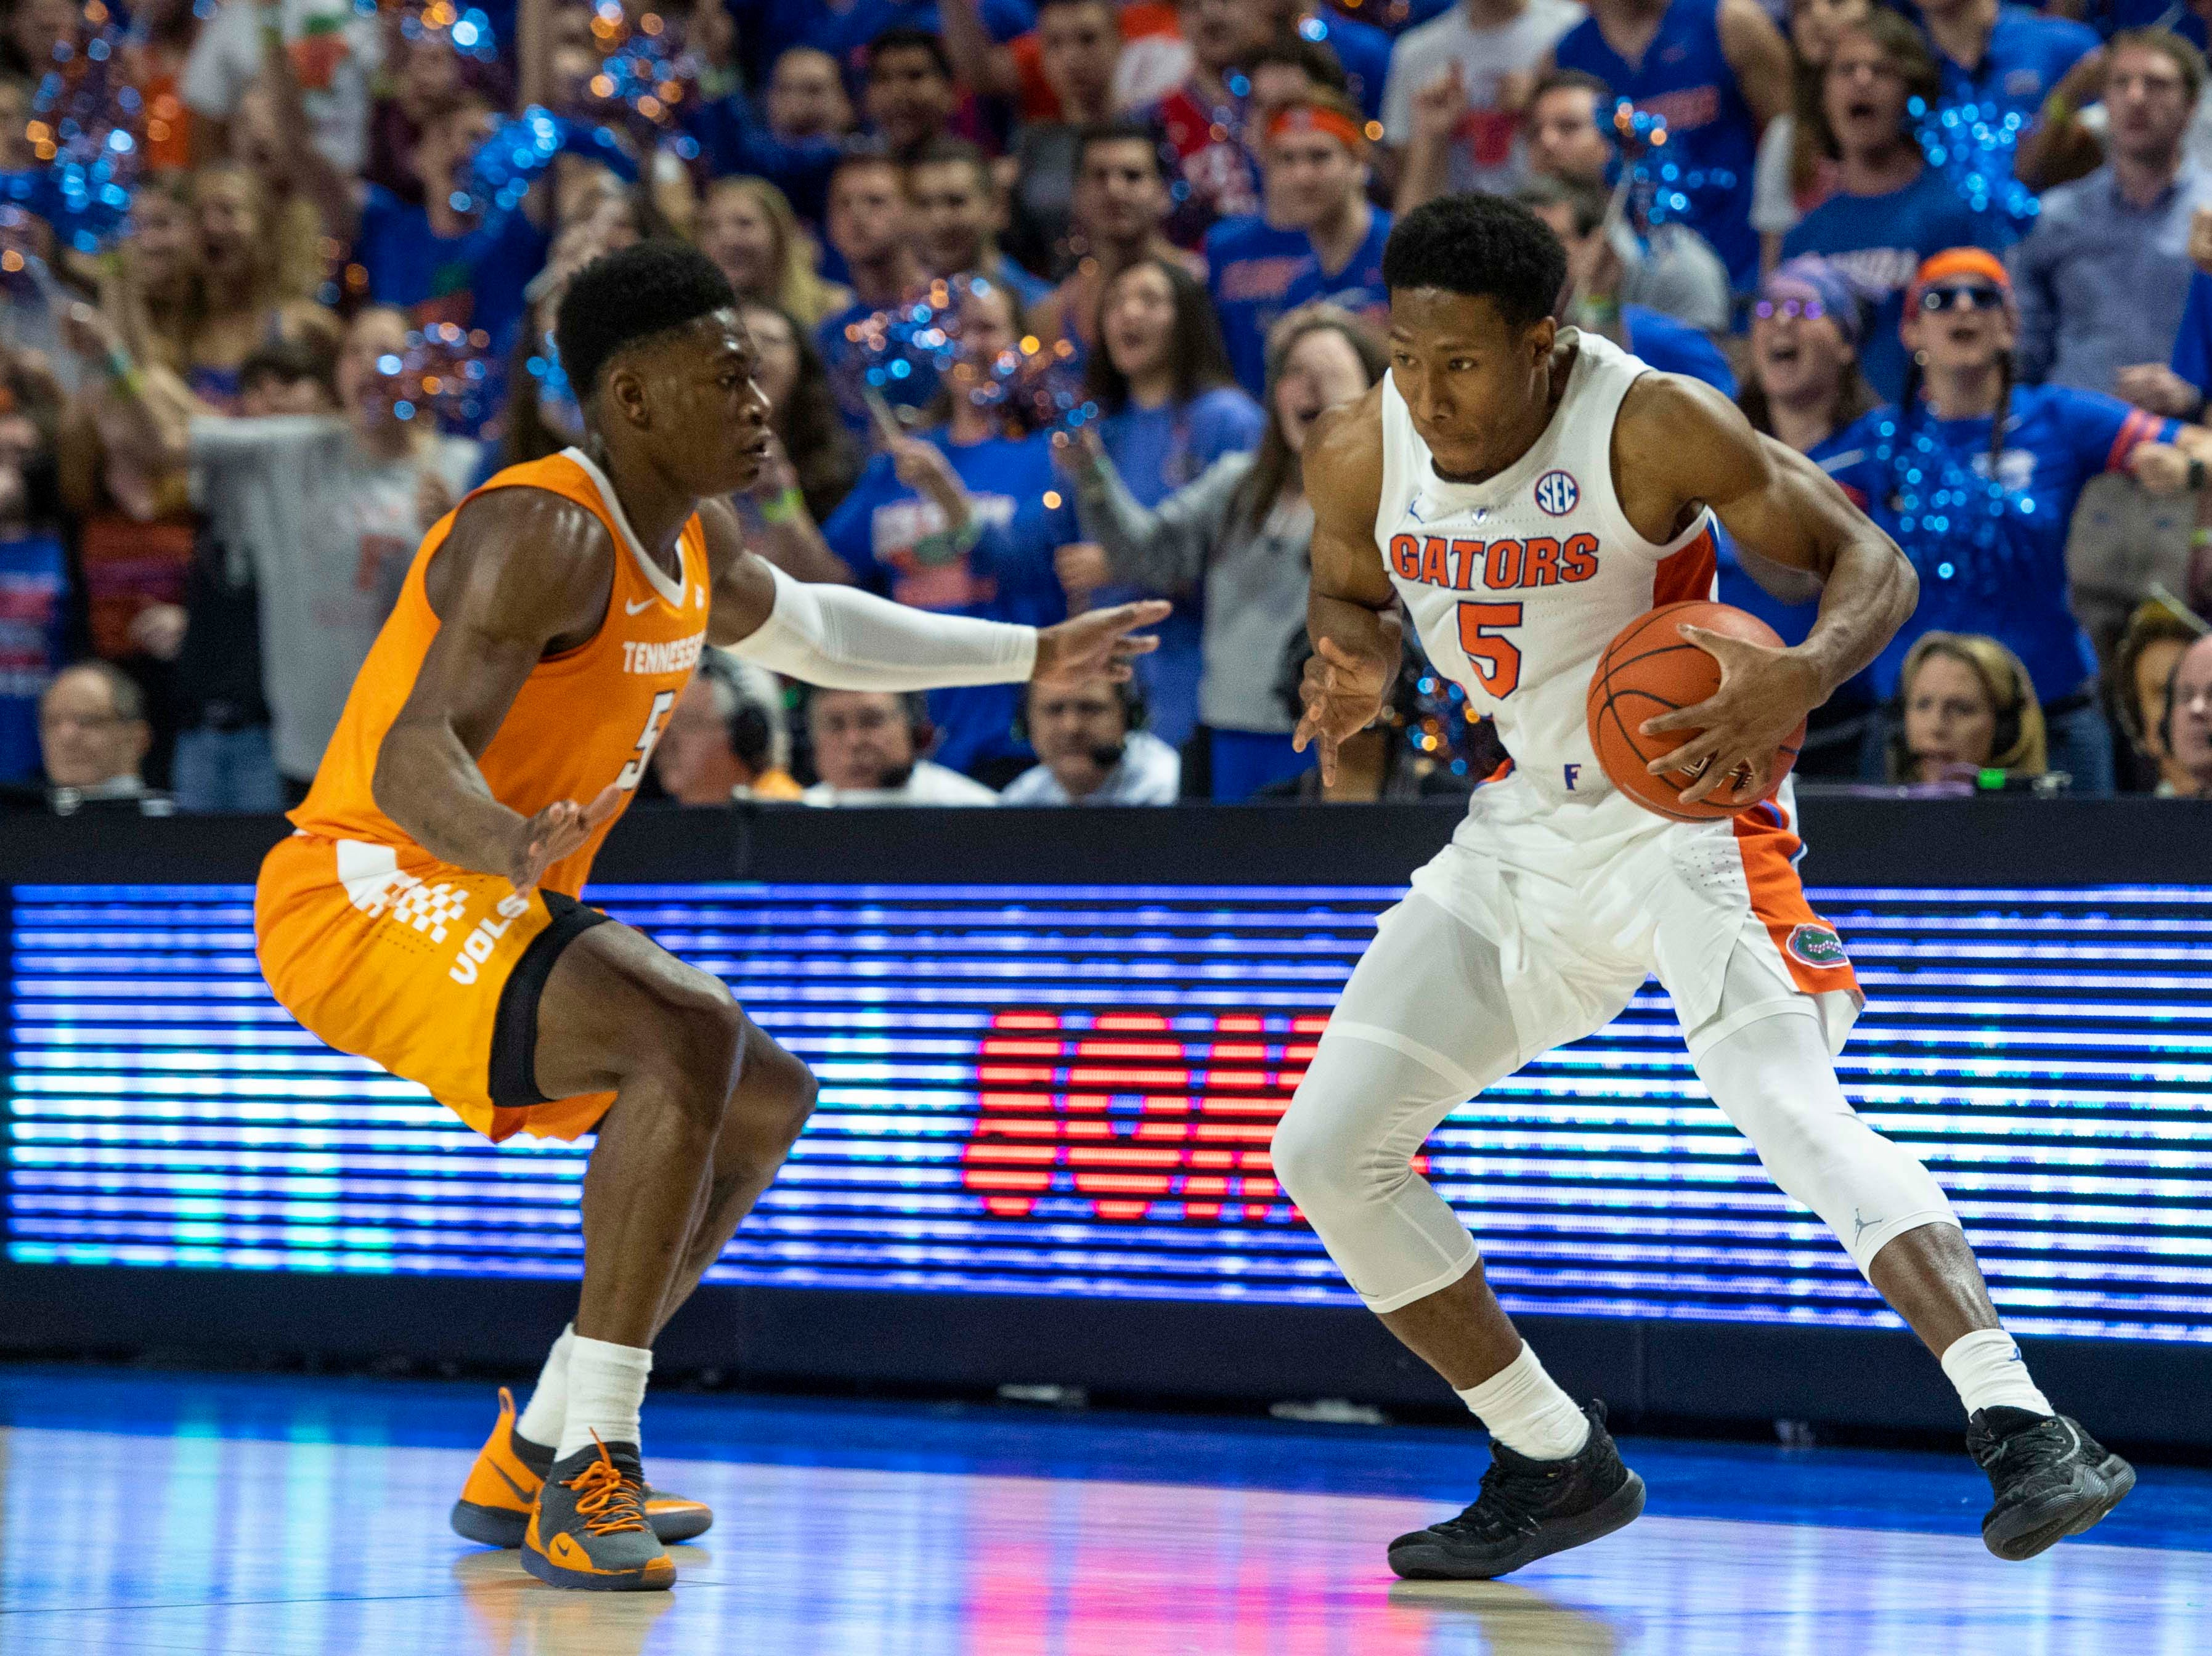 Florida Gators guard KeVaughn Allen (5) makes a spin move as Tennessee Volunteers guard Admiral Schofield (5) defends  on Jan. 12, 2019.